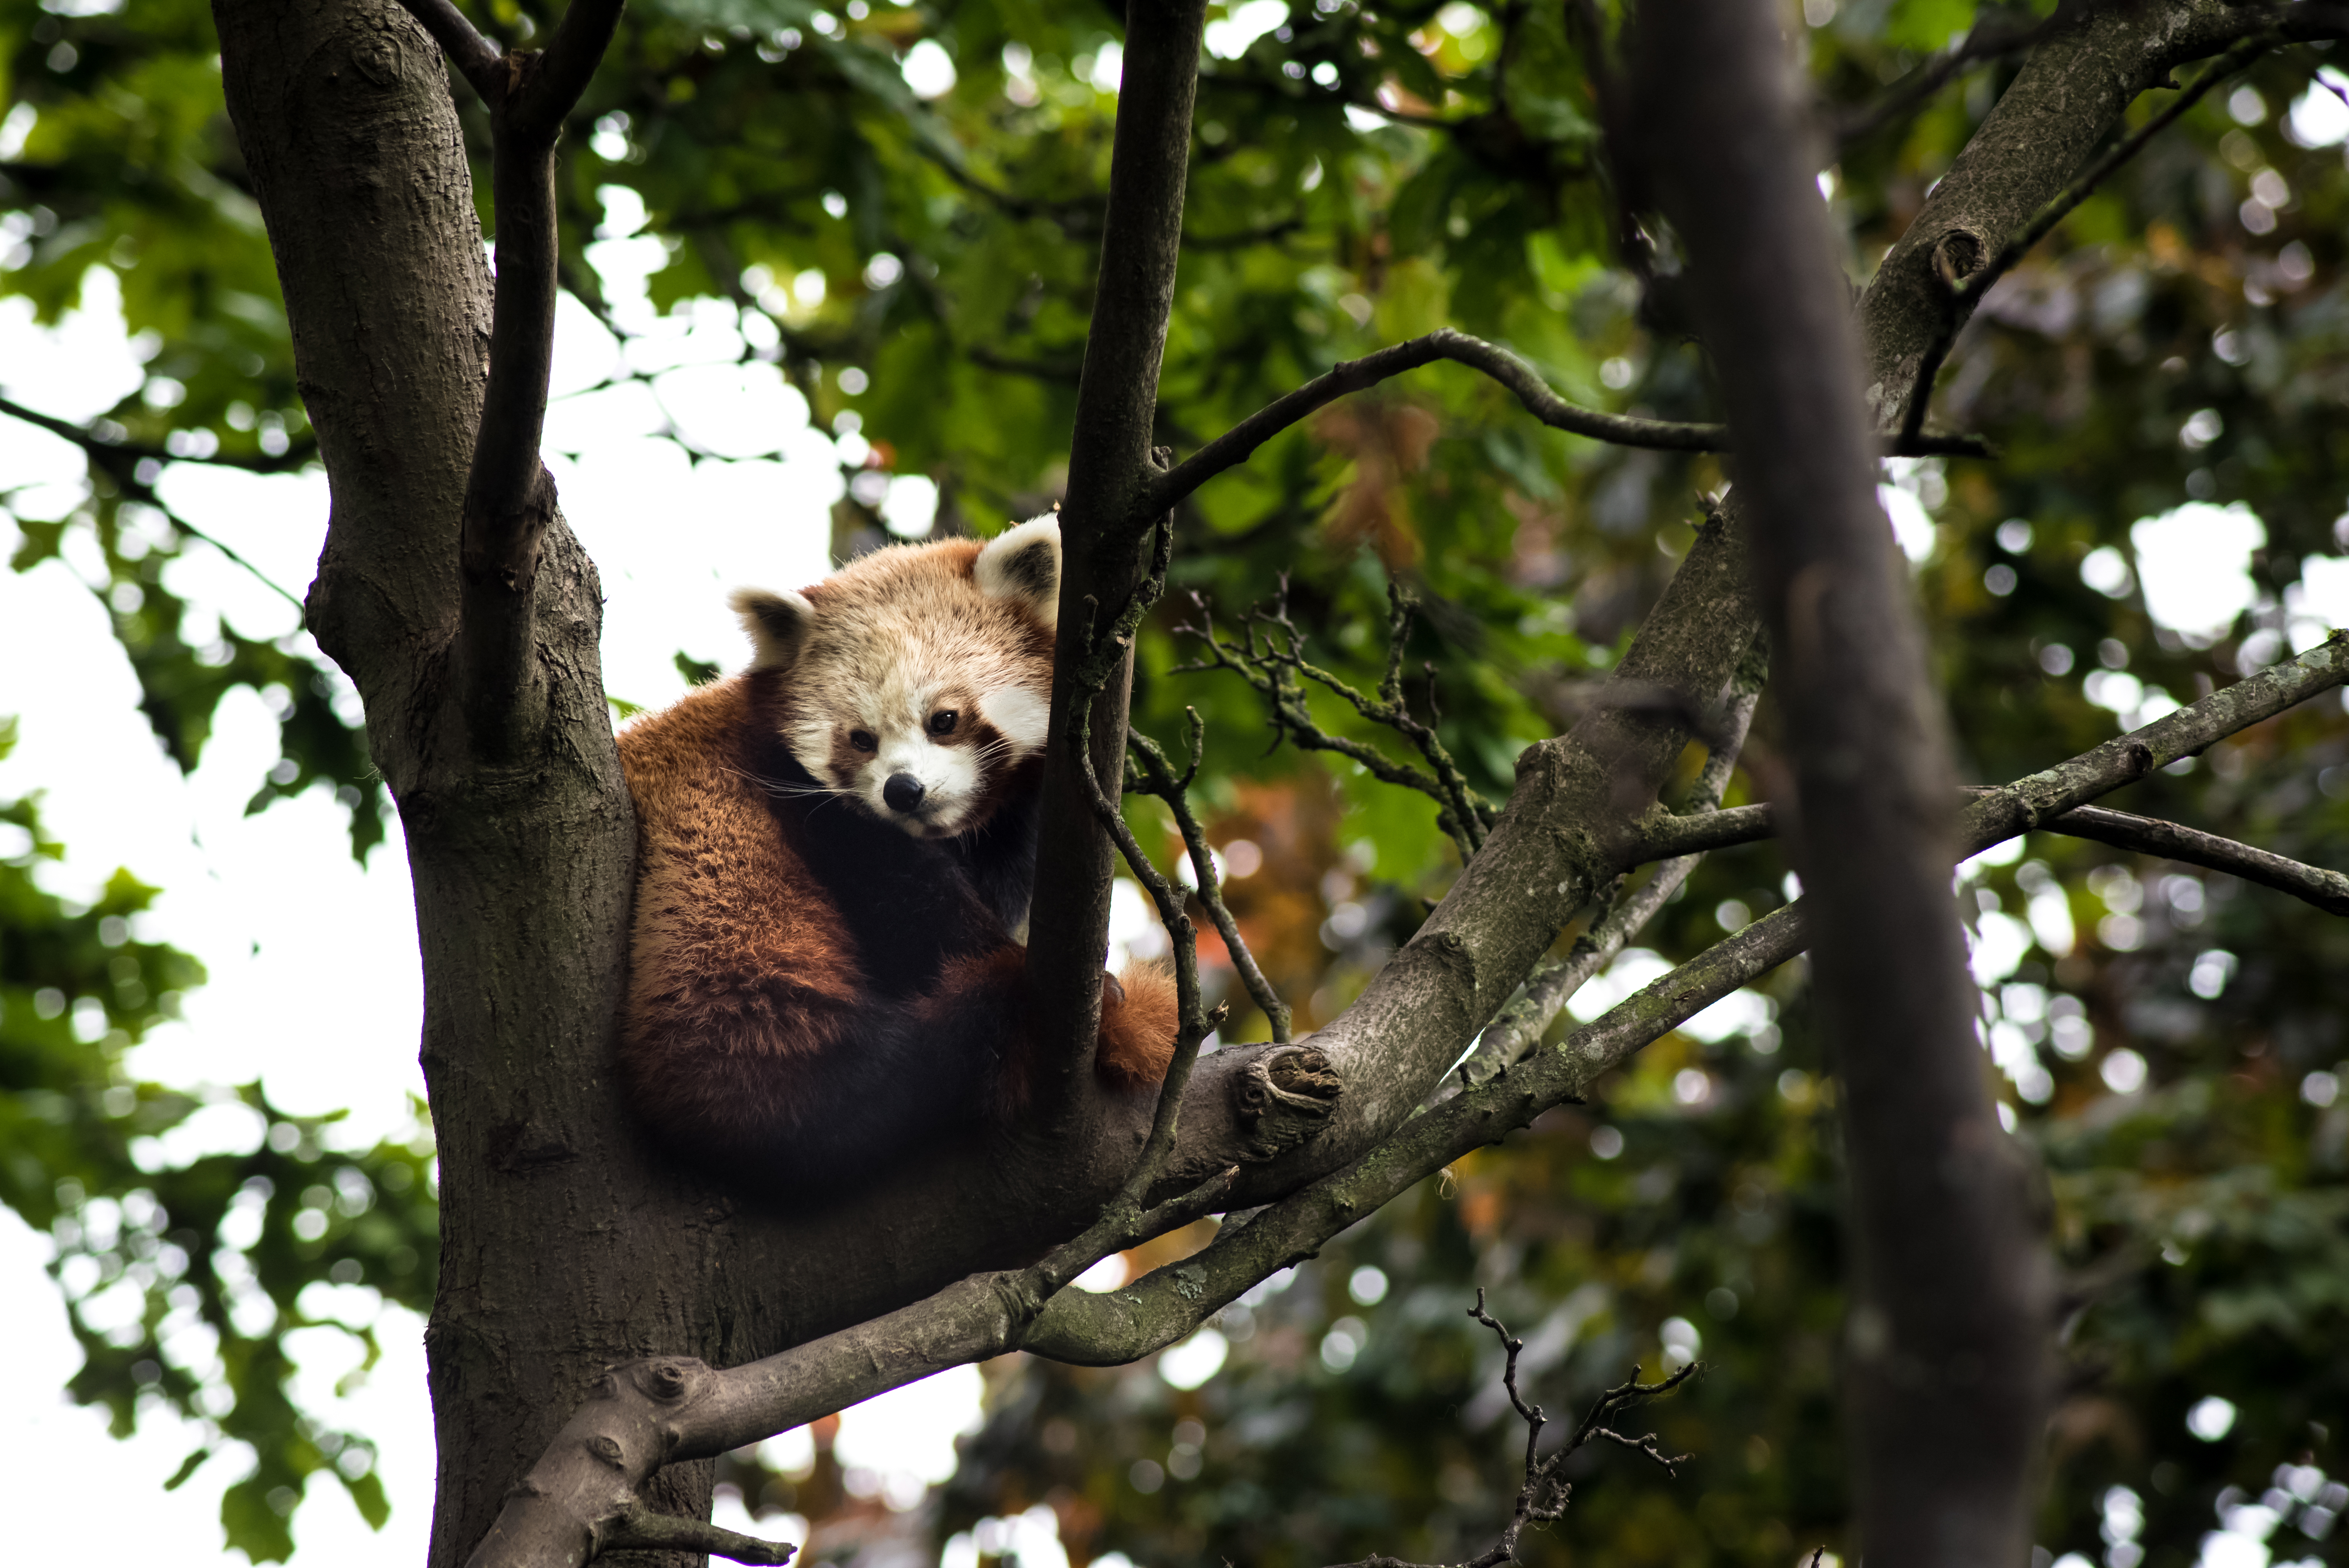 Hd Cute Panda Wallpaper Red Panda Sleeping On Tree Branch 183 Free Stock Photo